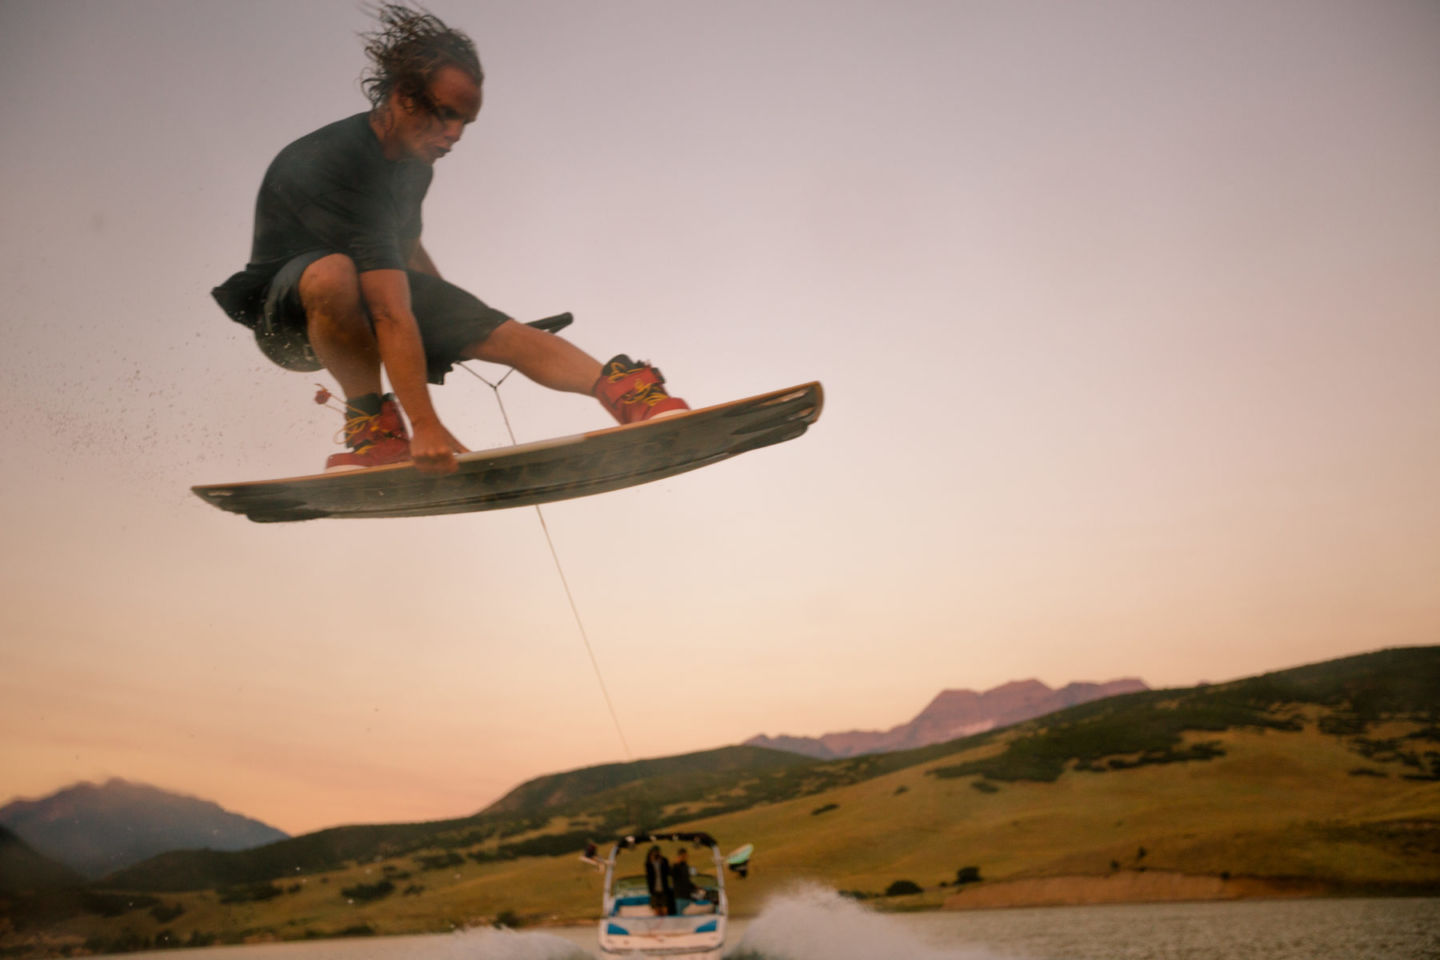 The Top 8 Wakeboard Boats Of All Time - Humanoid Wakeboards